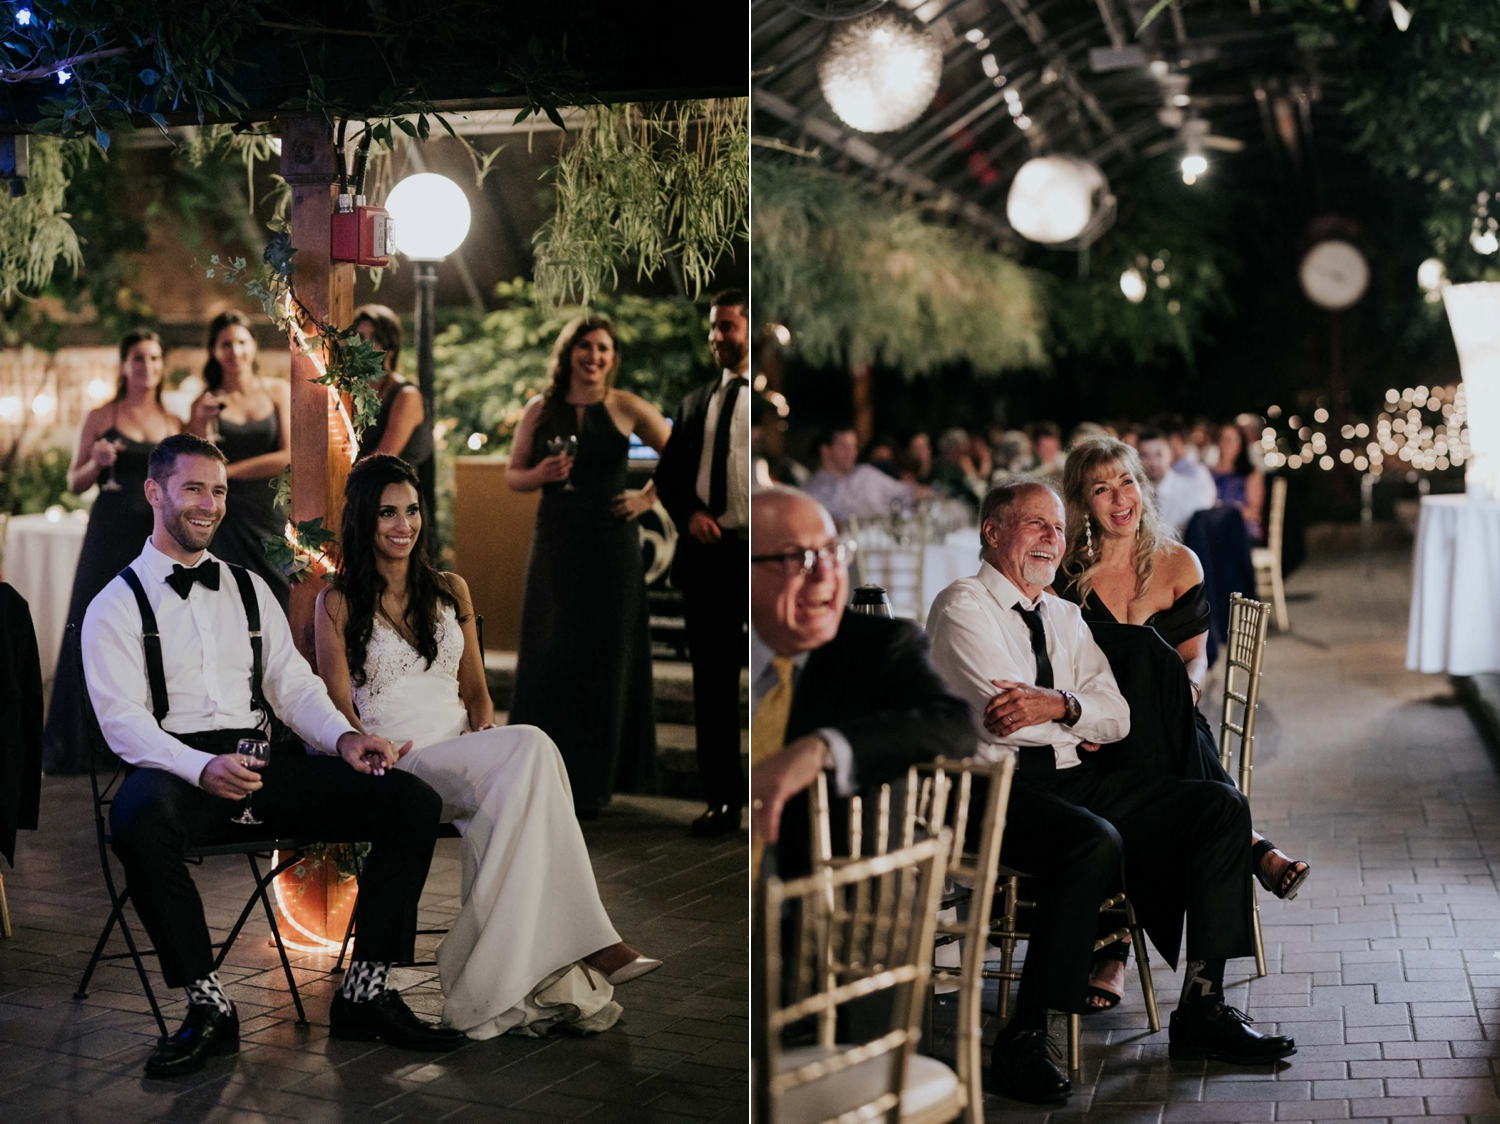 Natural candid photograph of wedding guests during speeches at wedding reception at Madsen's Greenhouse wedding venue in Newmarket close to Toronto